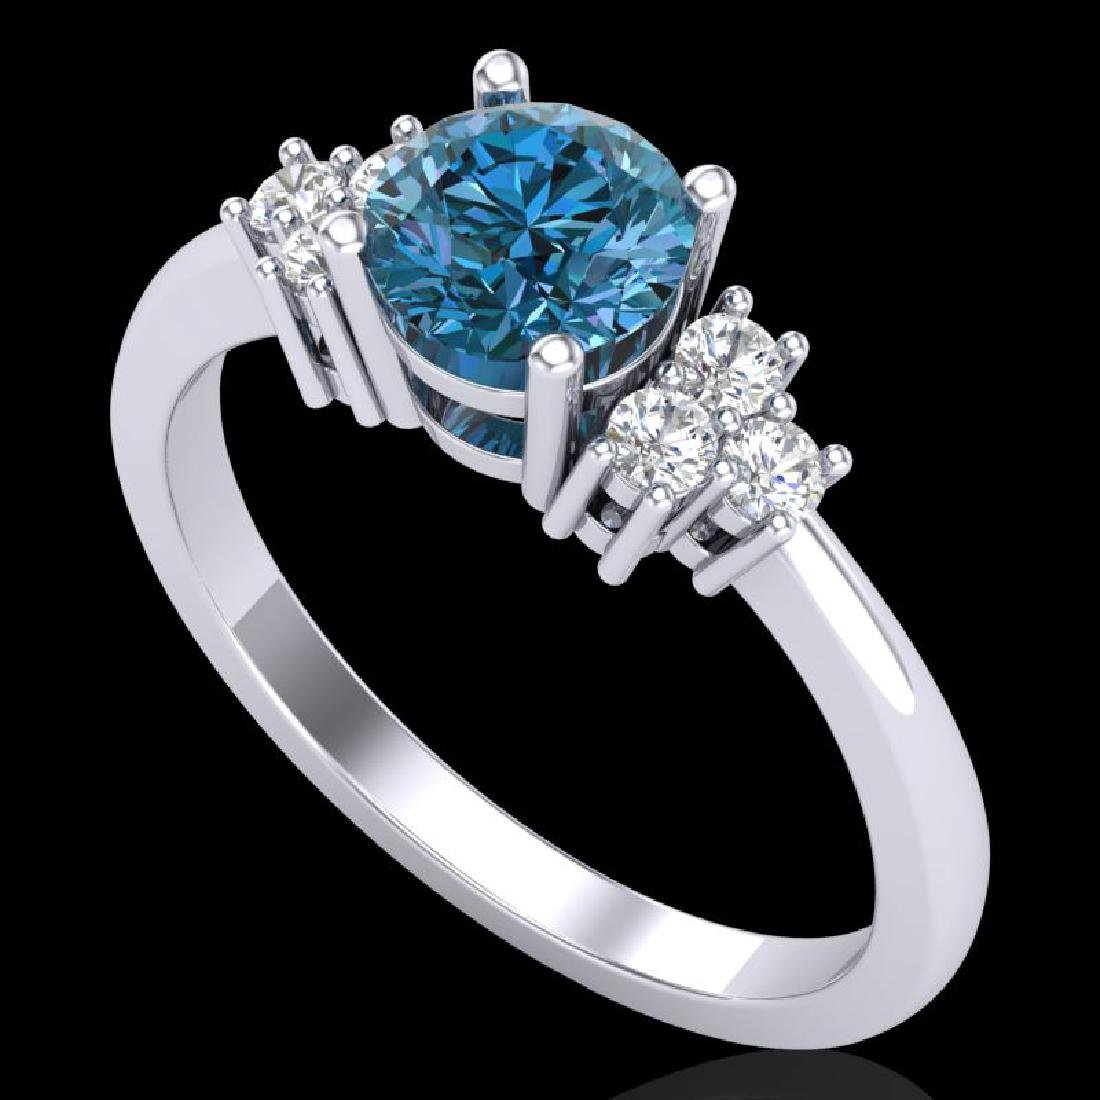 1 CTW Fancy Intense Blue Diamond Solitaire Engagement